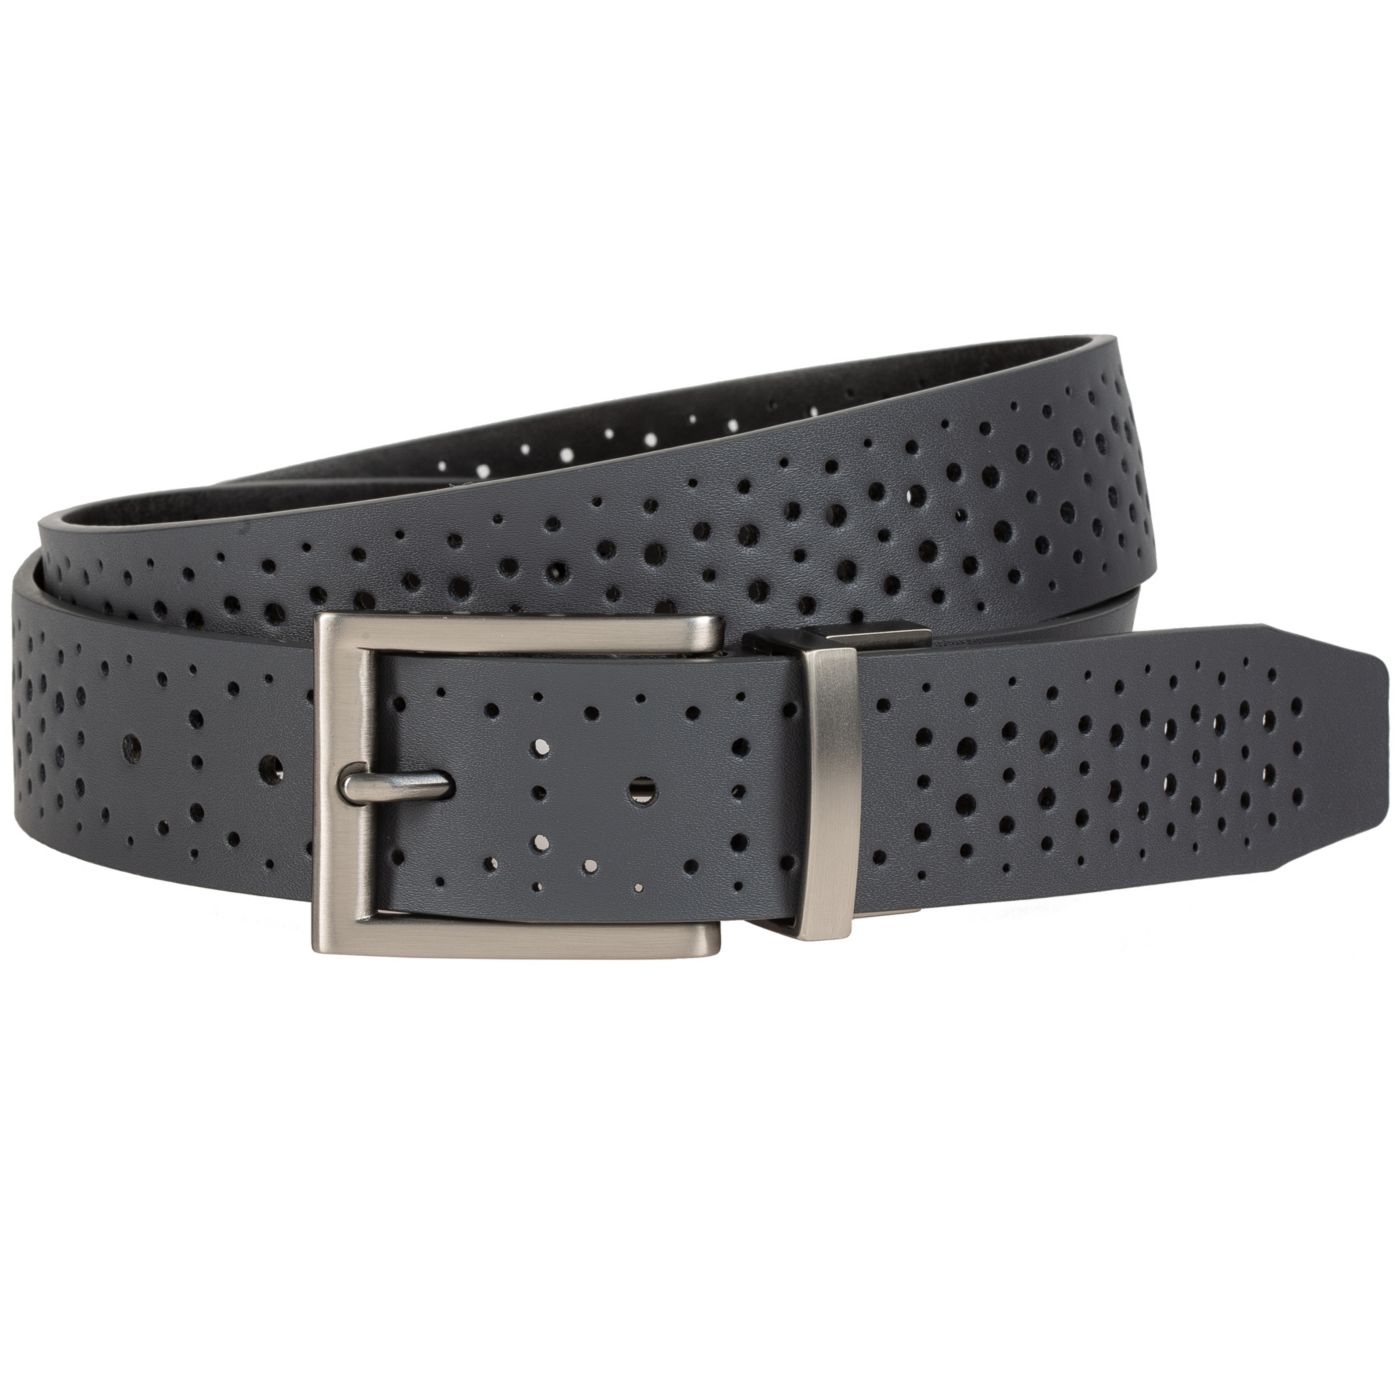 Nike Men's Gradient Perforated Reversible Golf Belt